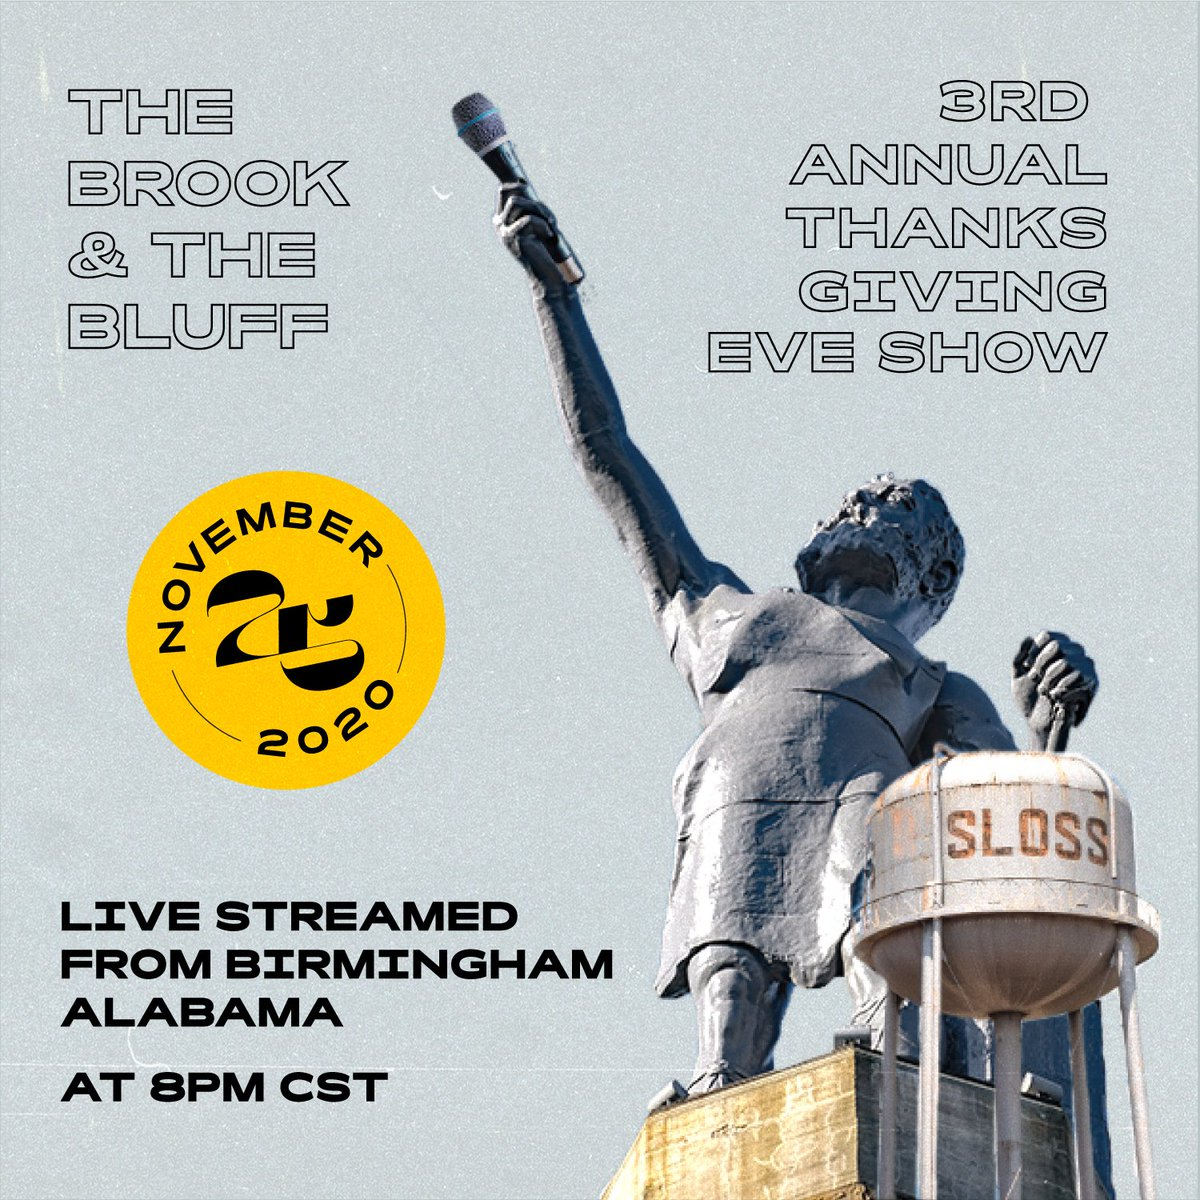 Our buds The Brook & The Bluff are doing a live stream on the eve of Thanksgiving! Check it out, tickets are on sale now! go.seated.com/events/40baf31…